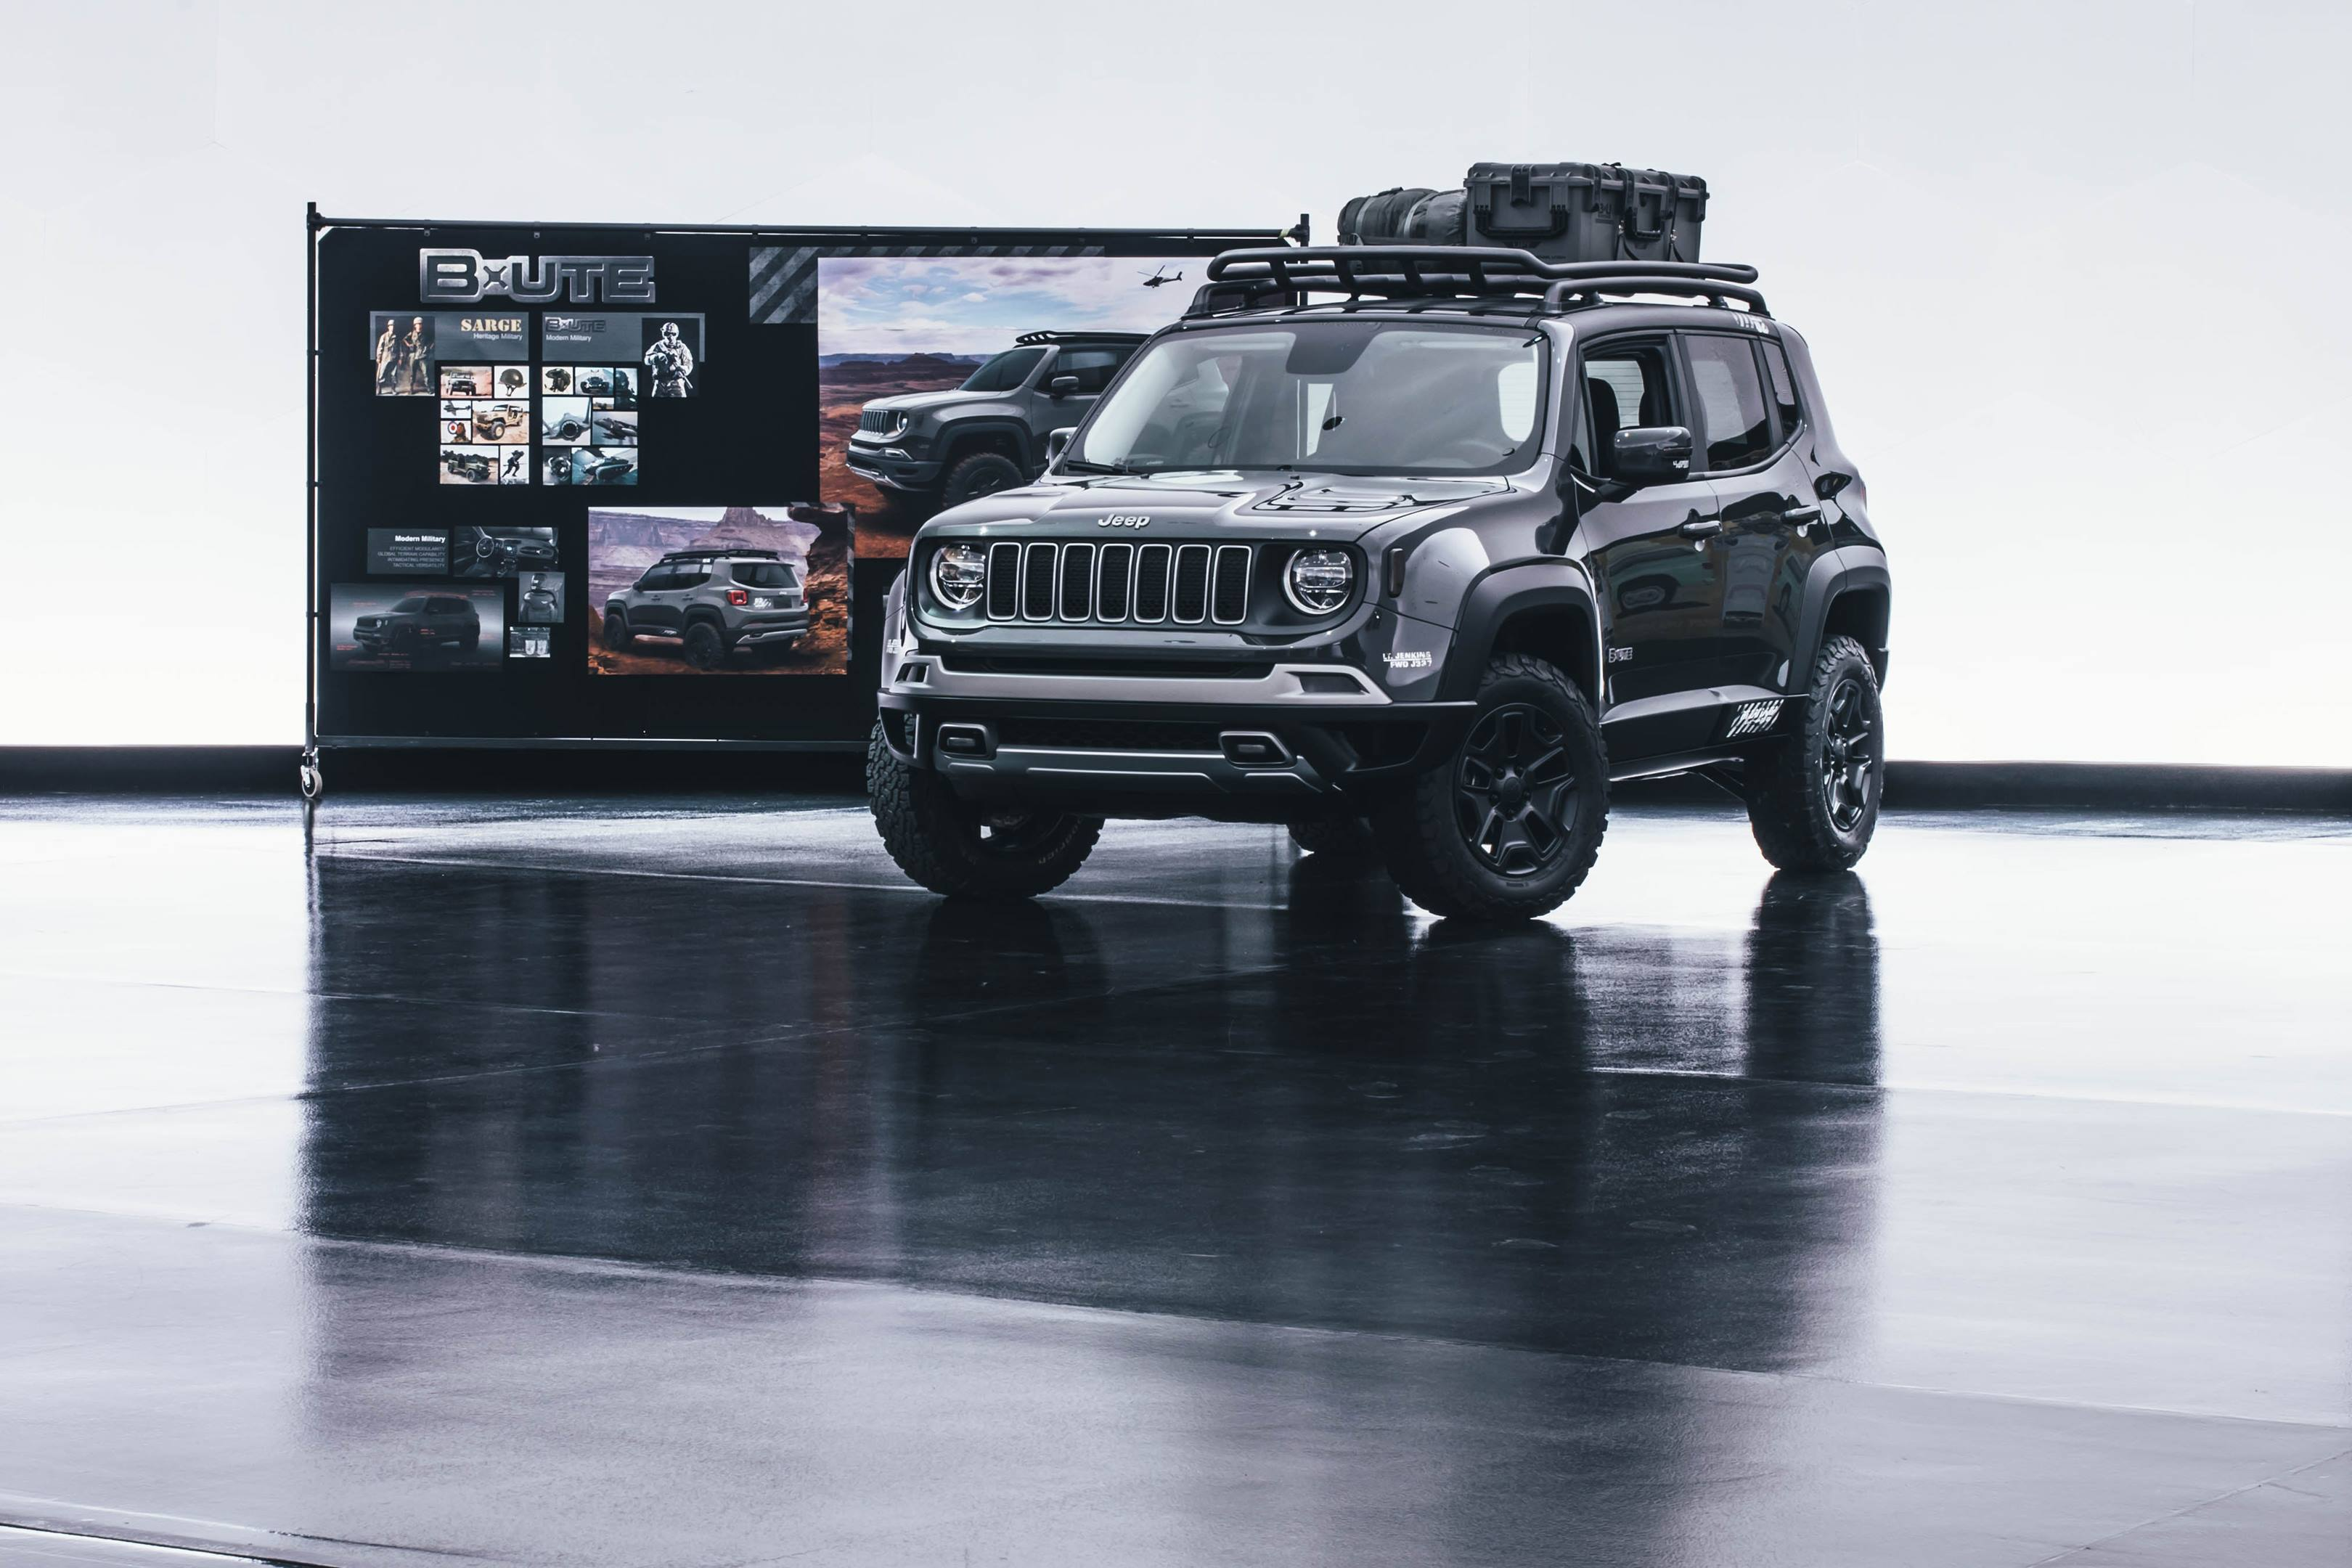 2018 Jeep B-Ute Concept front 3/4